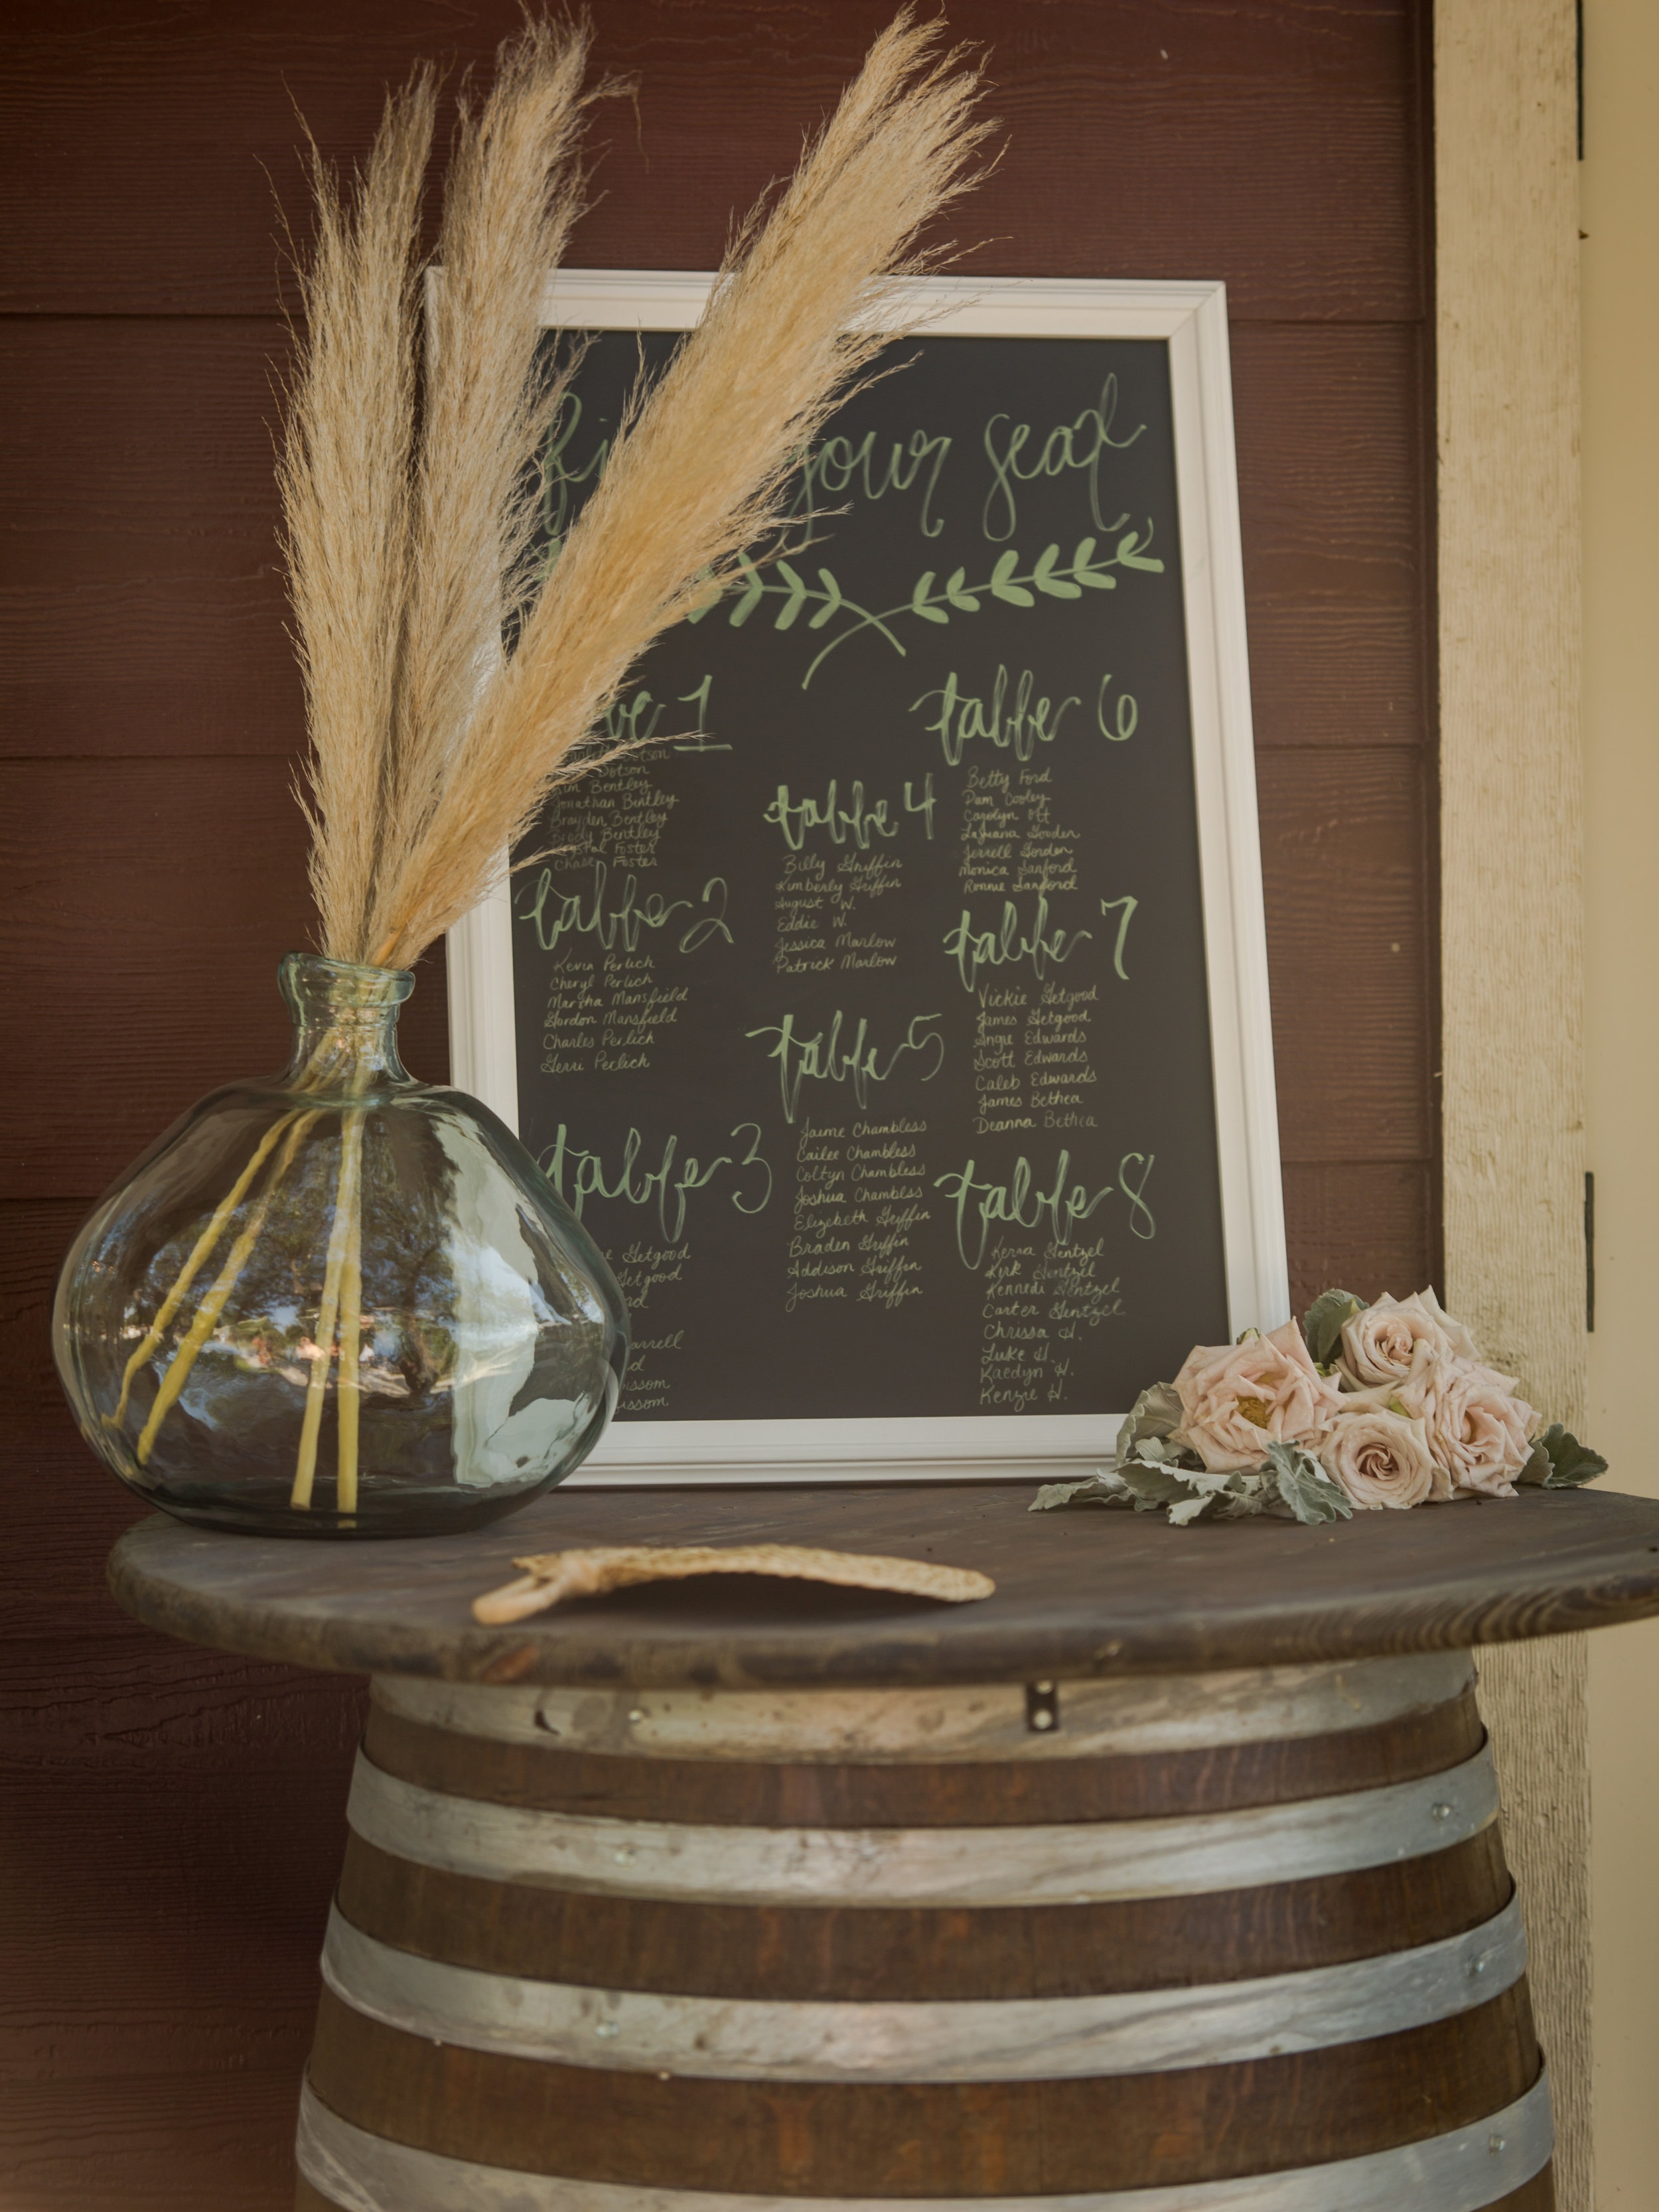 Wedding reception seat assignments drawn on a chalkboard and placed atop a wooden barrel.